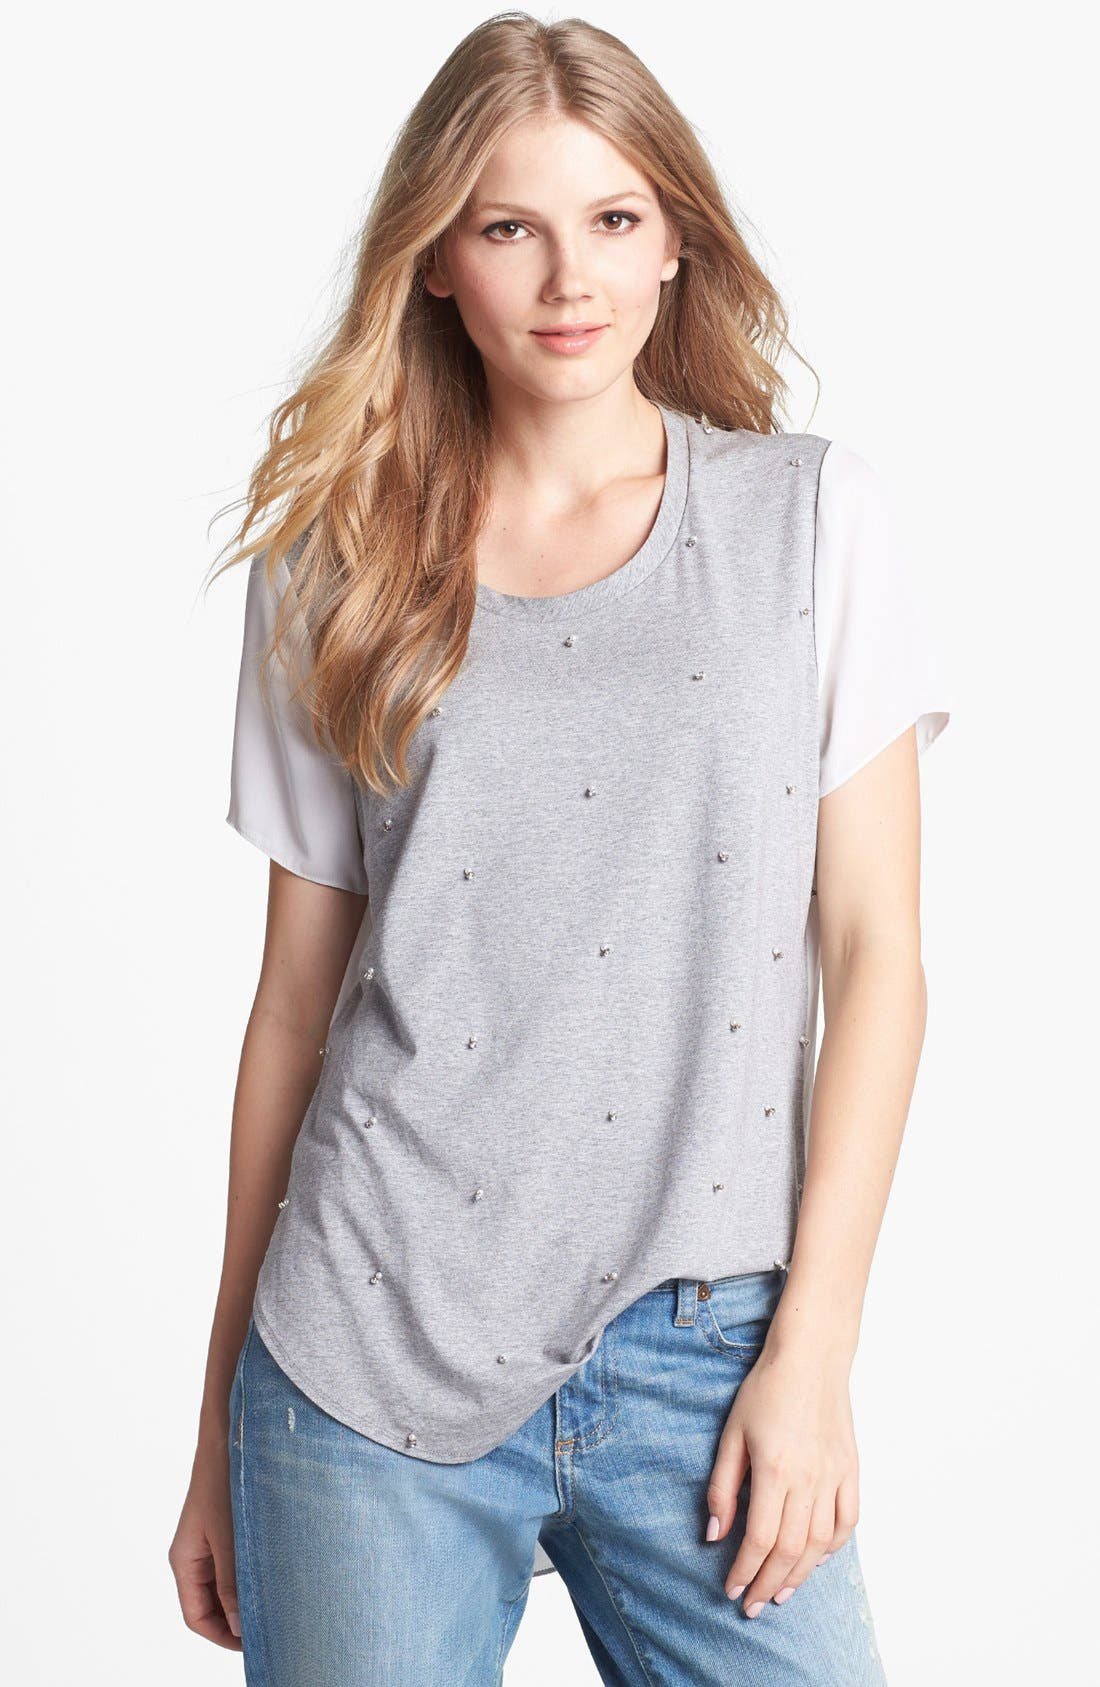 Alternate Image 1 Selected - Vince Camuto Woven Back Embellished Tee